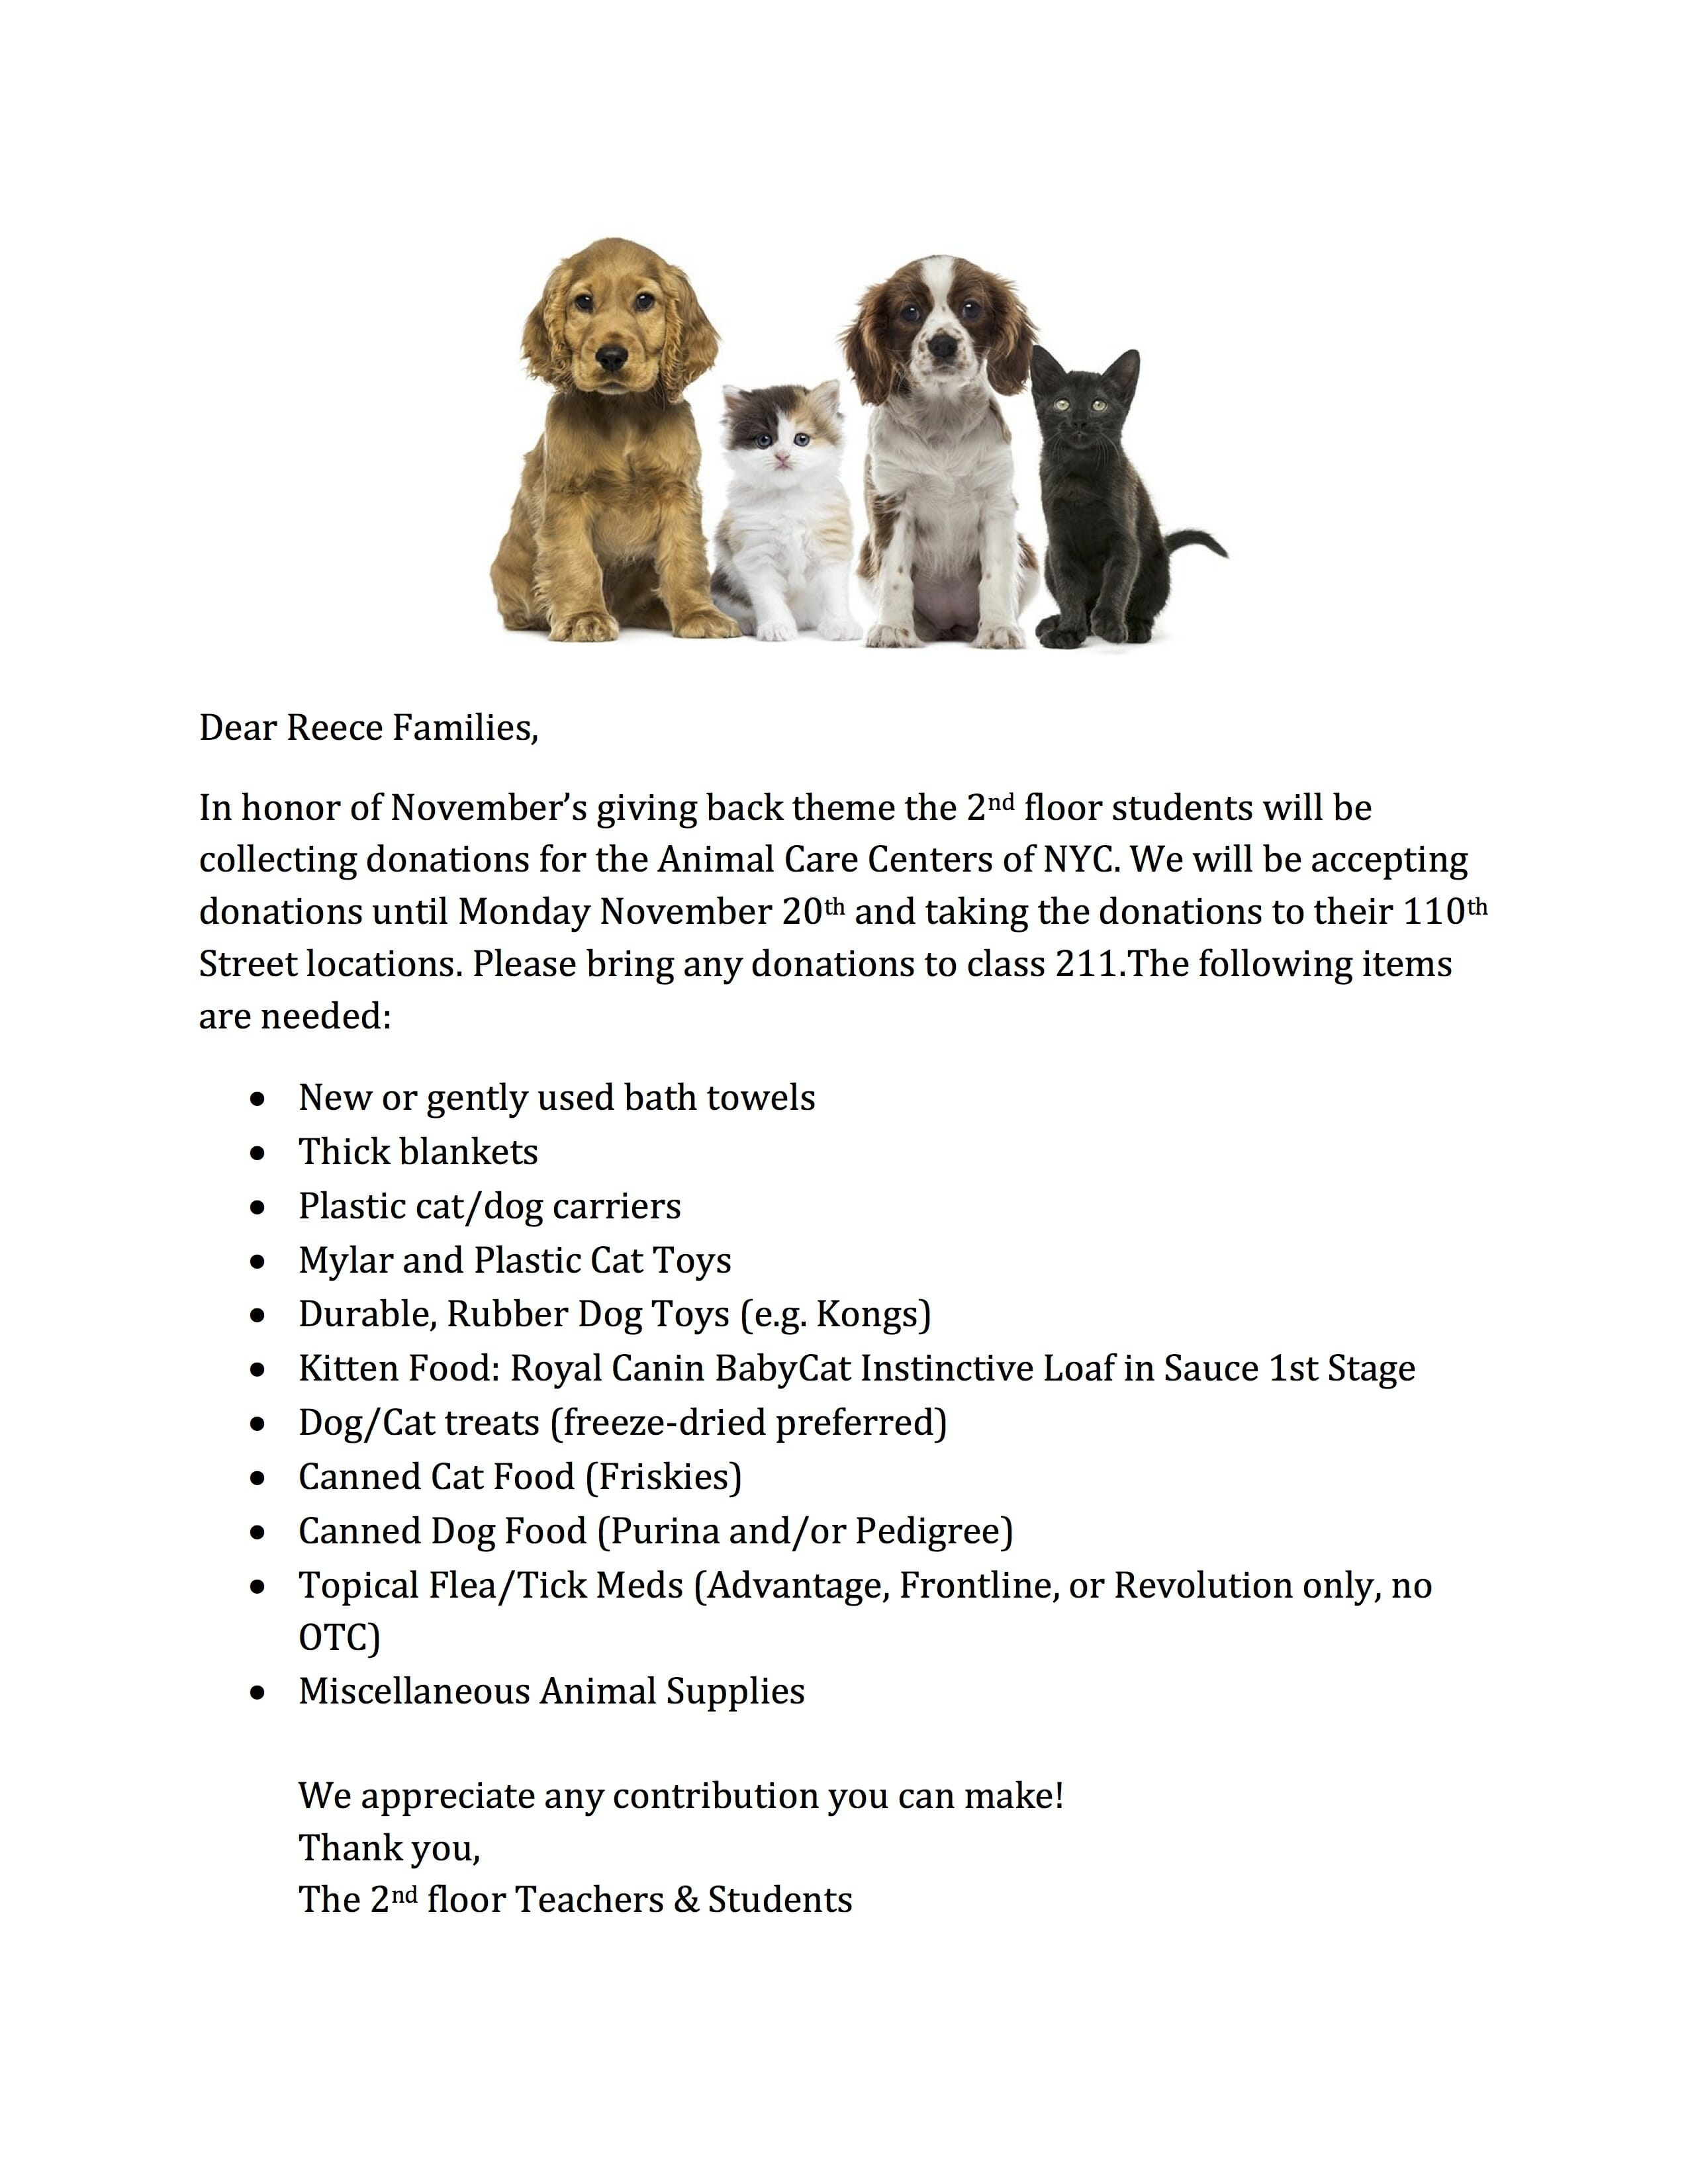 In honor of November's giving back theme the 2nd floor students will be collecting donations for the Animal Care Centers of NYC. We will be accepting donations until Monday November 20th and taking the donations to their 110th Street locations. Please bring any donations to class 211.